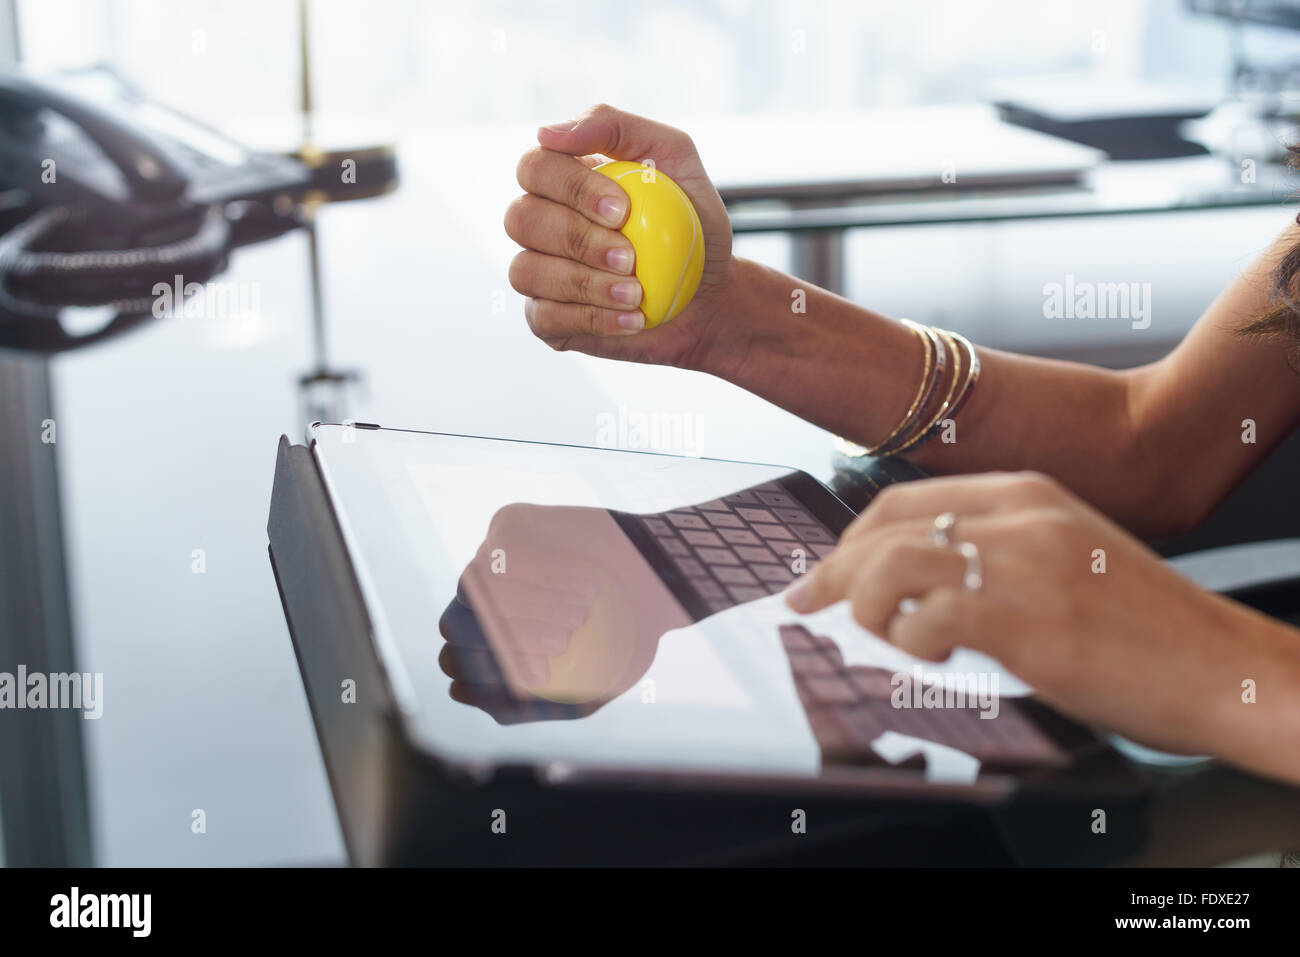 Office worker typing email on tablet computer. The woman feels stressed and nervous, holds an antistress yellow - Stock Image